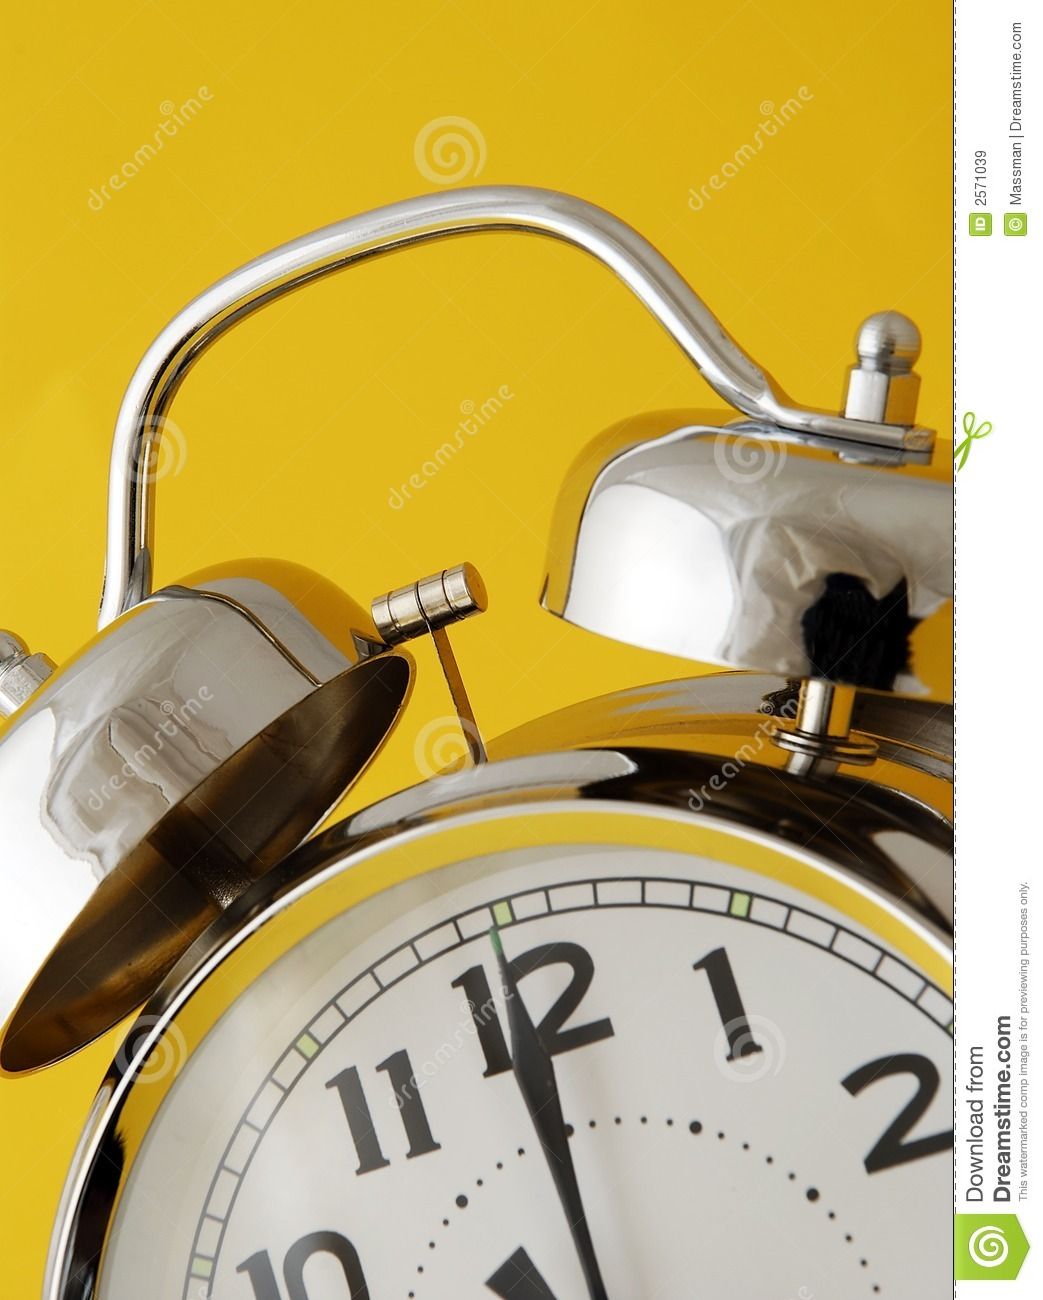 How To Set An Old Fashioned Alarm Clock